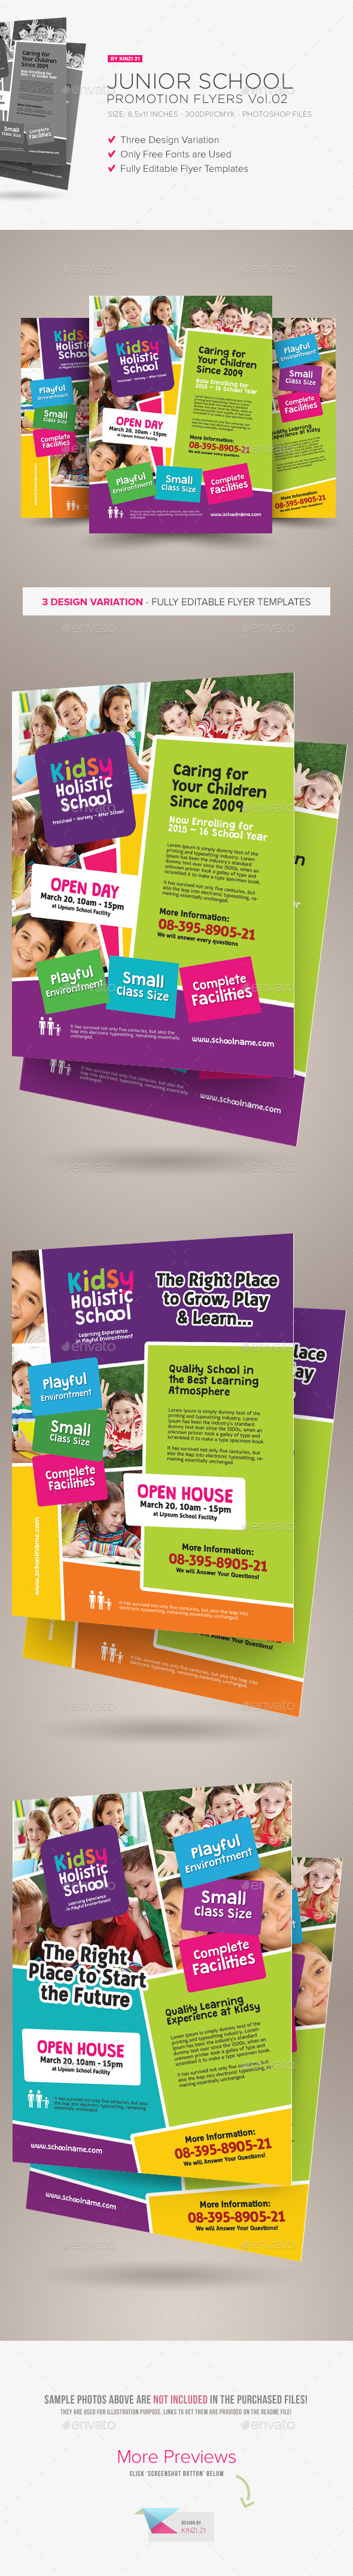 GraphicRiver Junior School Promotion Flyers Vol.02 10358813